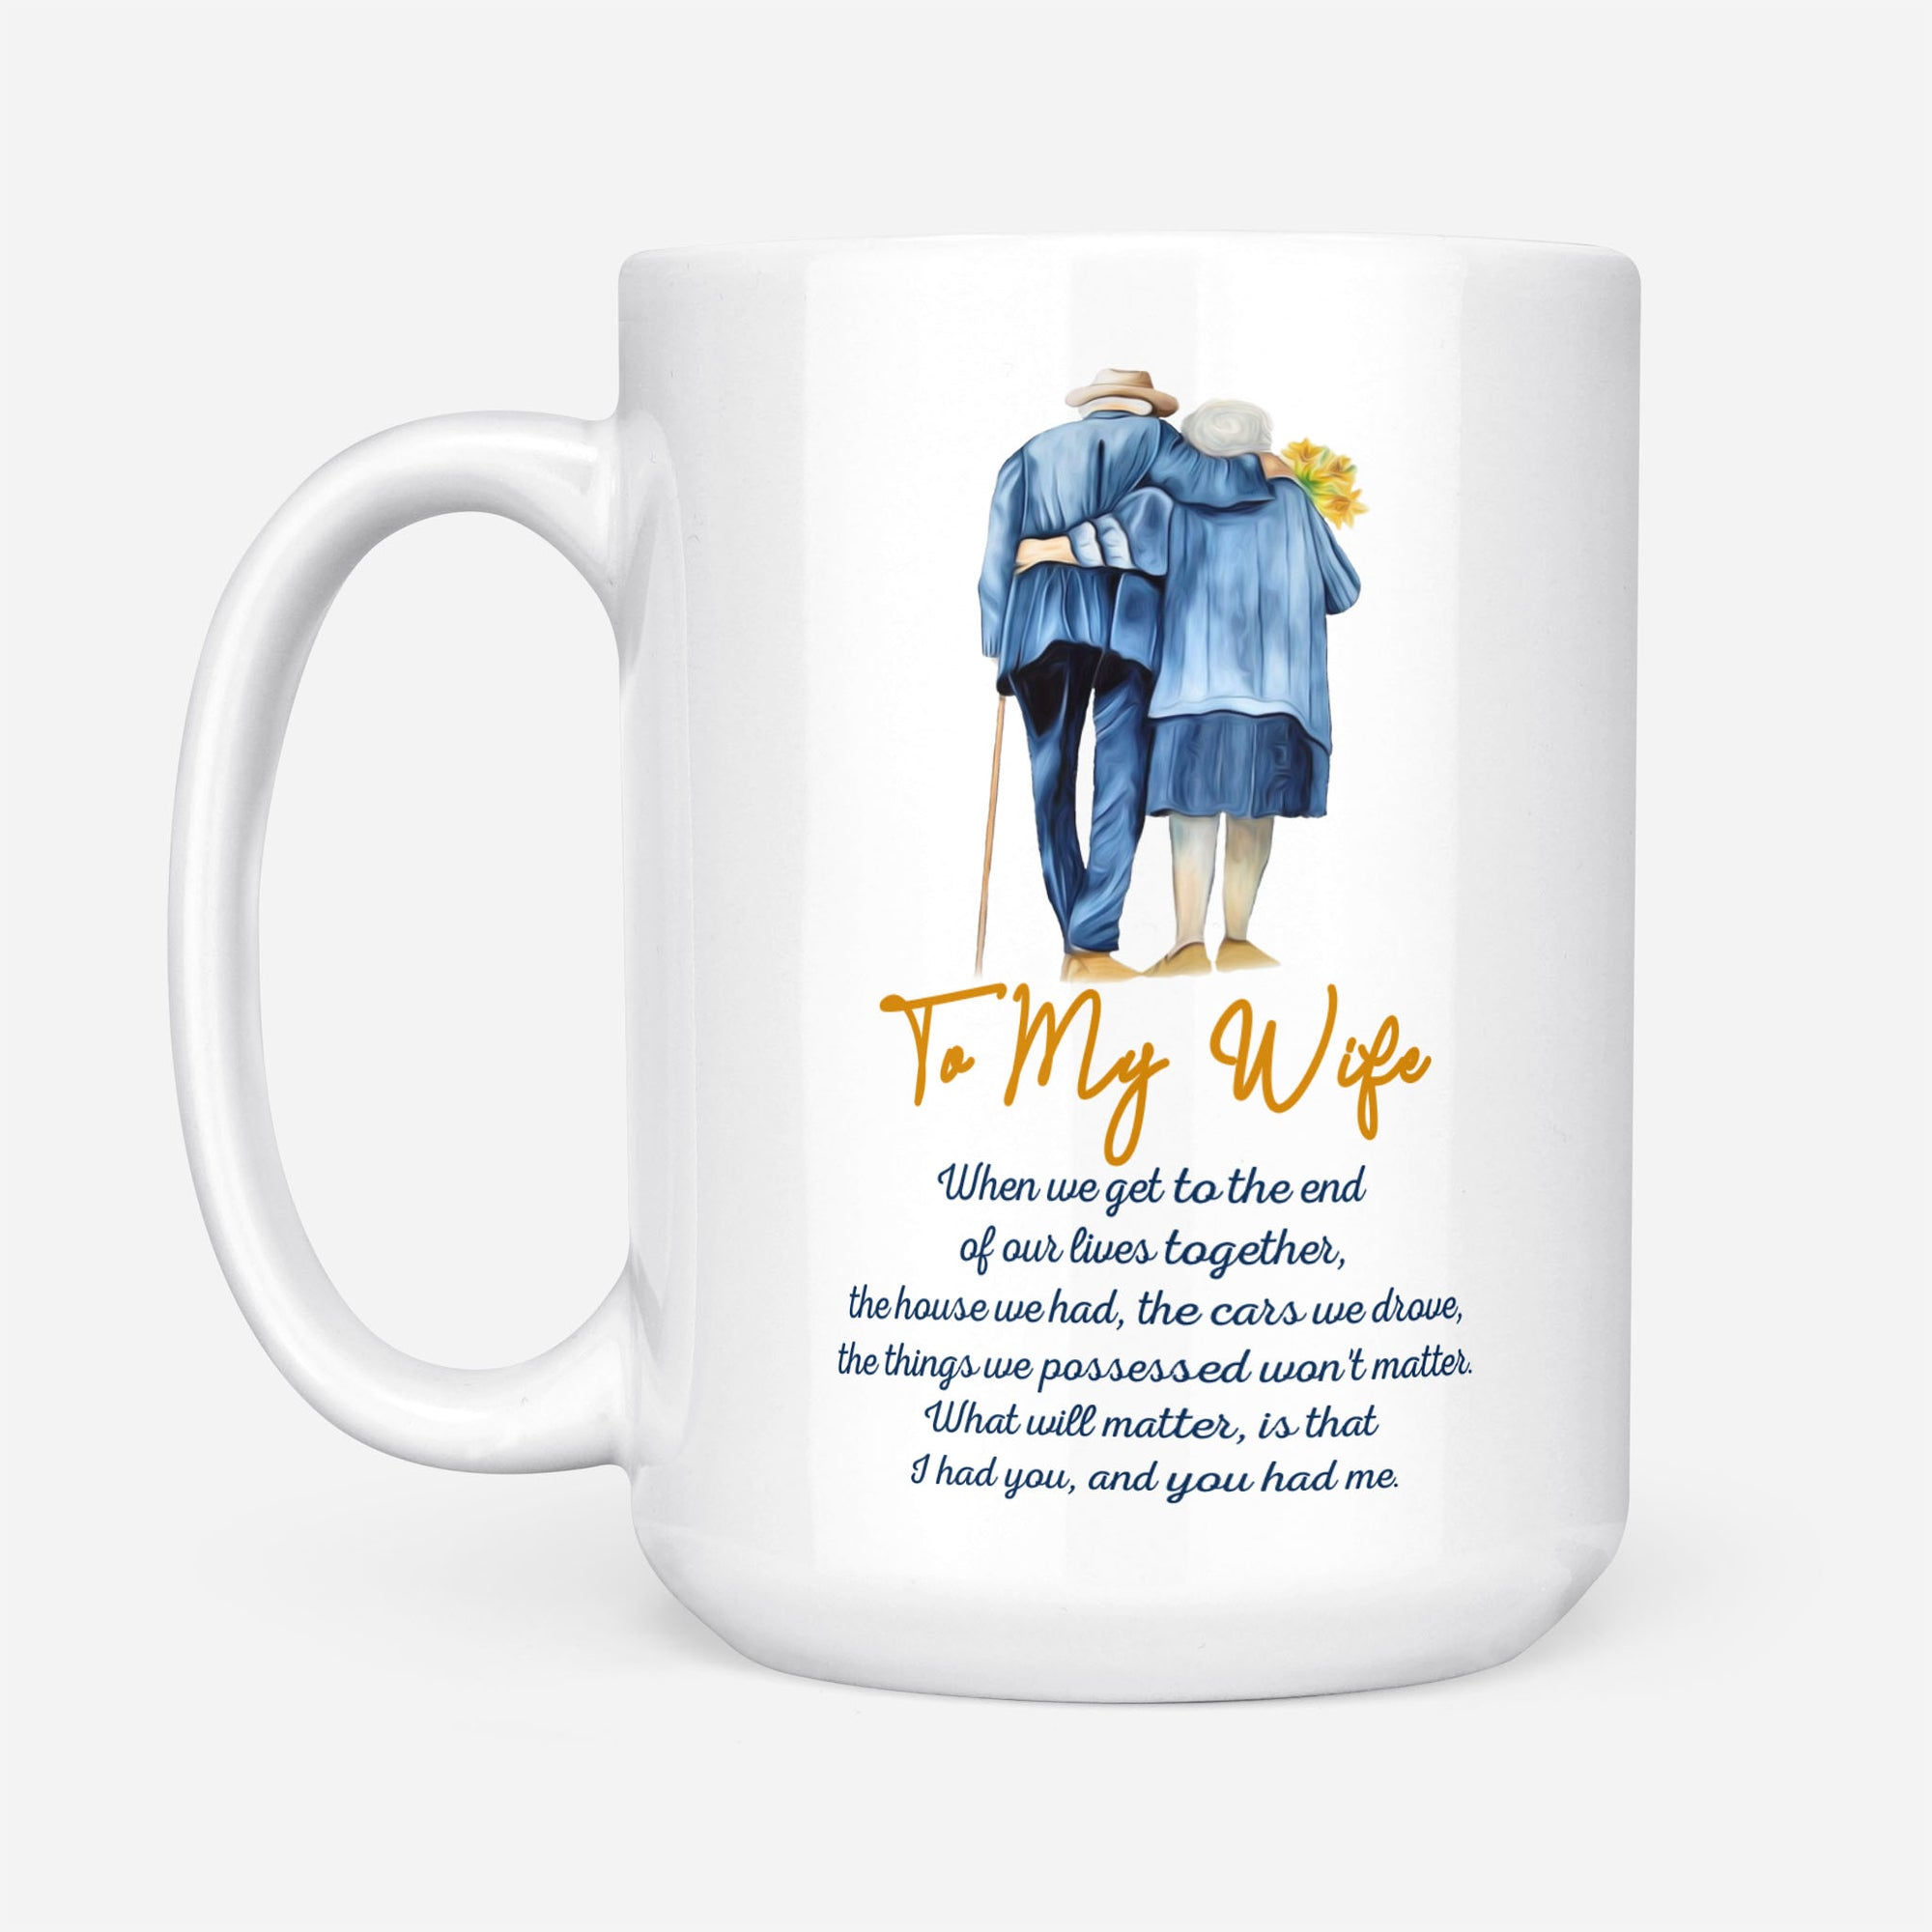 To my wife coffee mug - I had you - Gift for her - Birthday gifts, ann - FAMIGIFTS